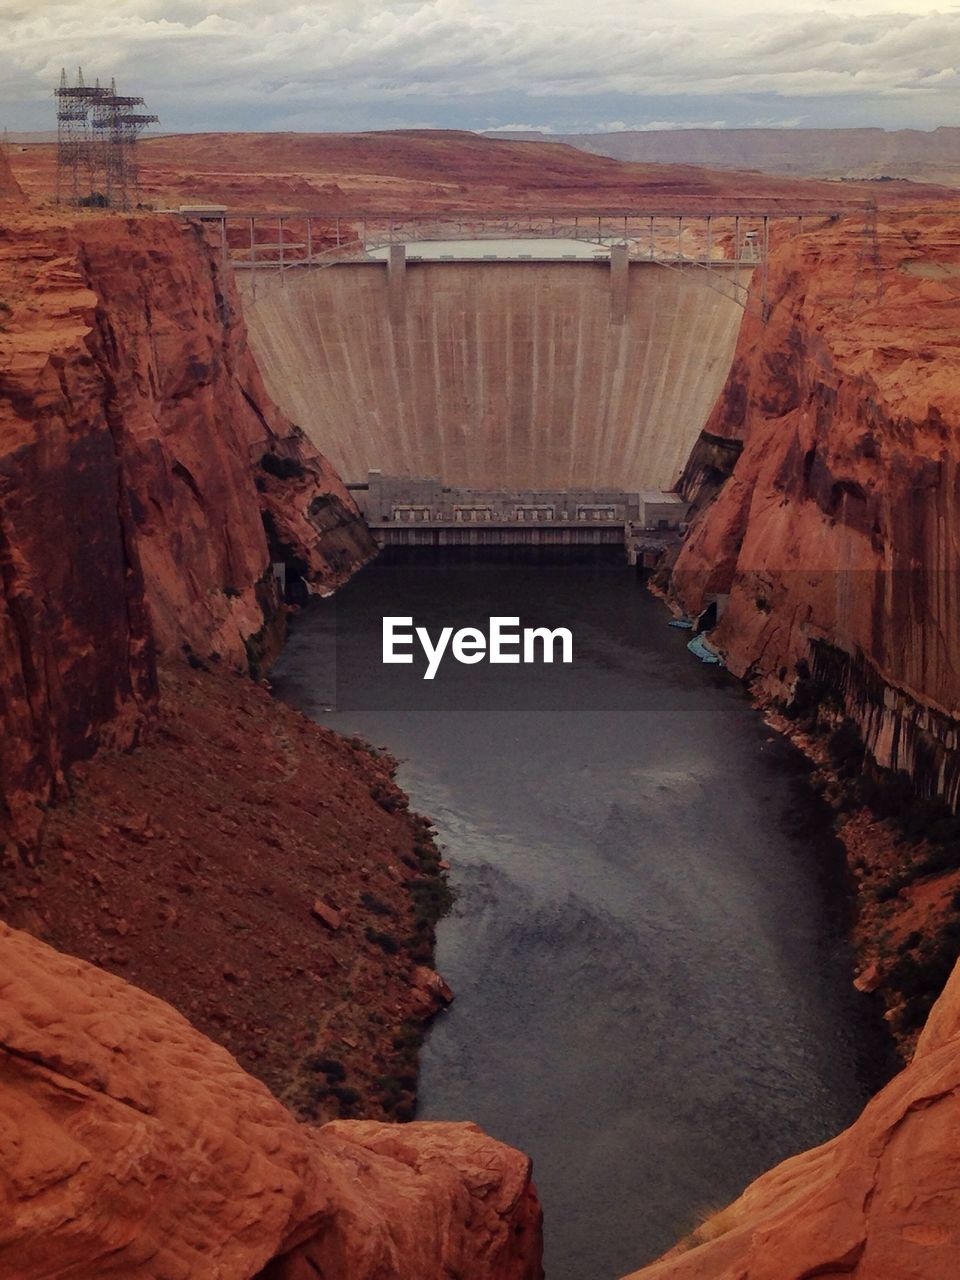 Glen canyon dam at lake powel